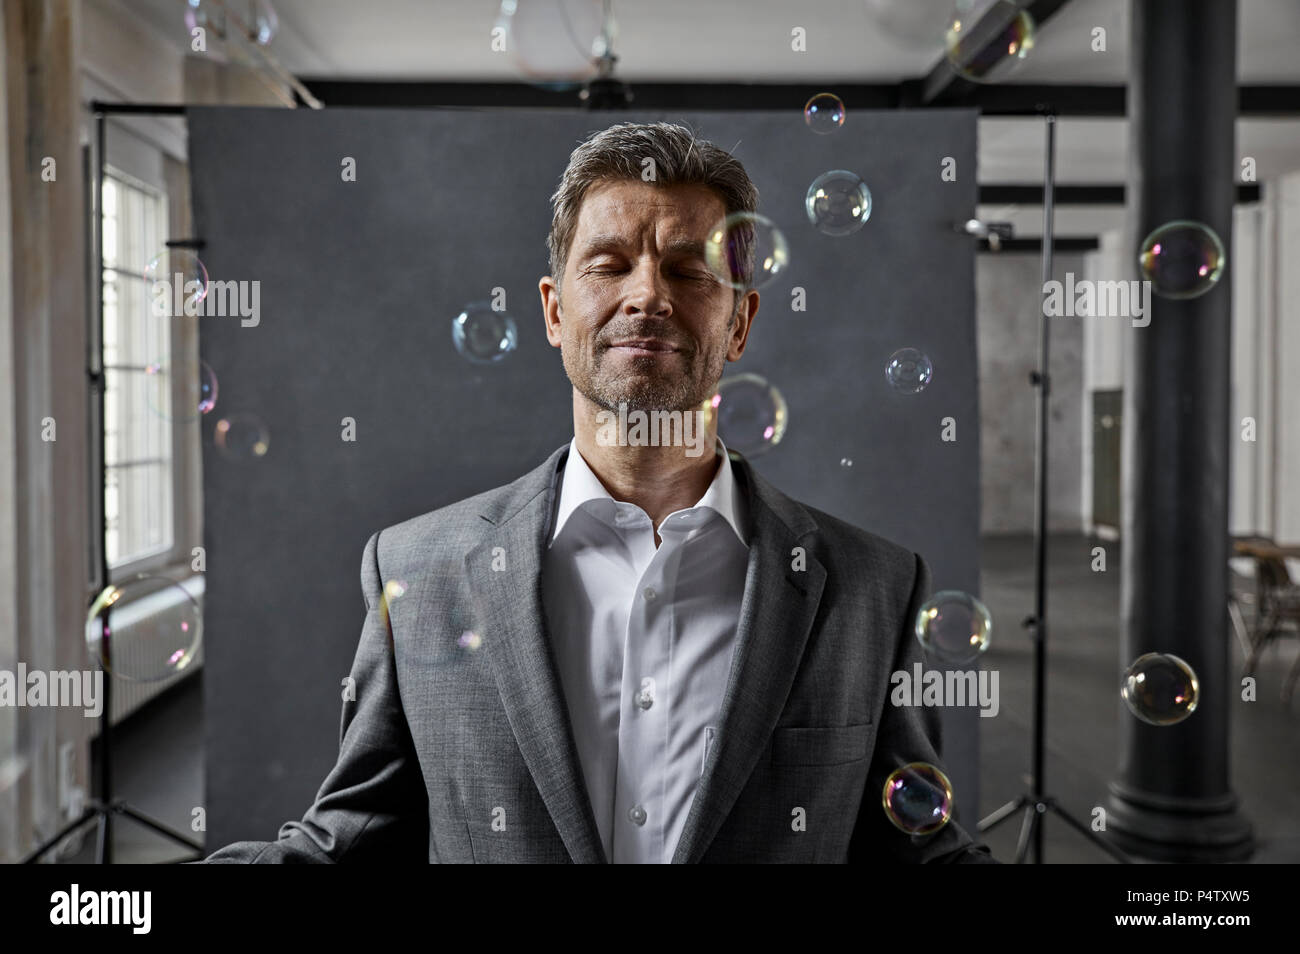 Portrait of mature businessman with bubbles in front of black backdrop in loft - Stock Image